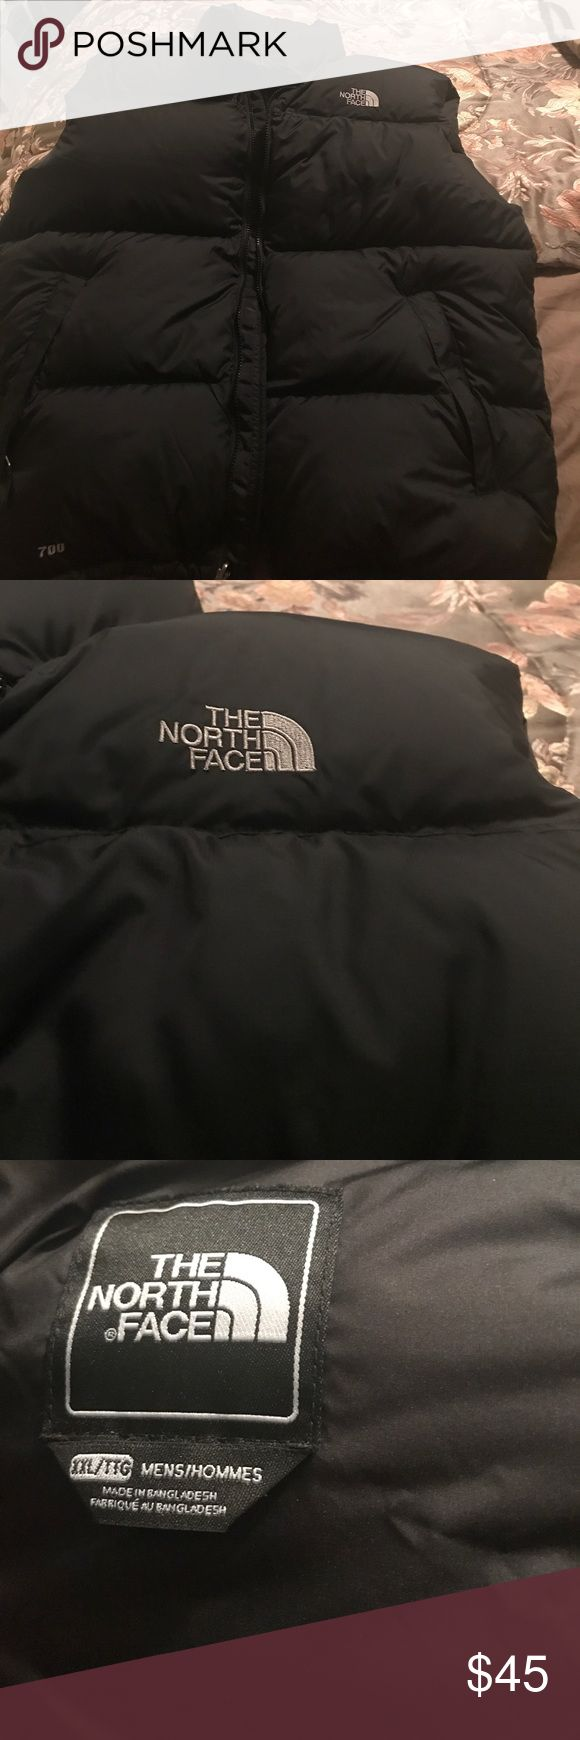 Men's North Face vest Black The North Face 700 puffer vest in excellent condition size xxl mens The North Face Jackets & Coats Puffers